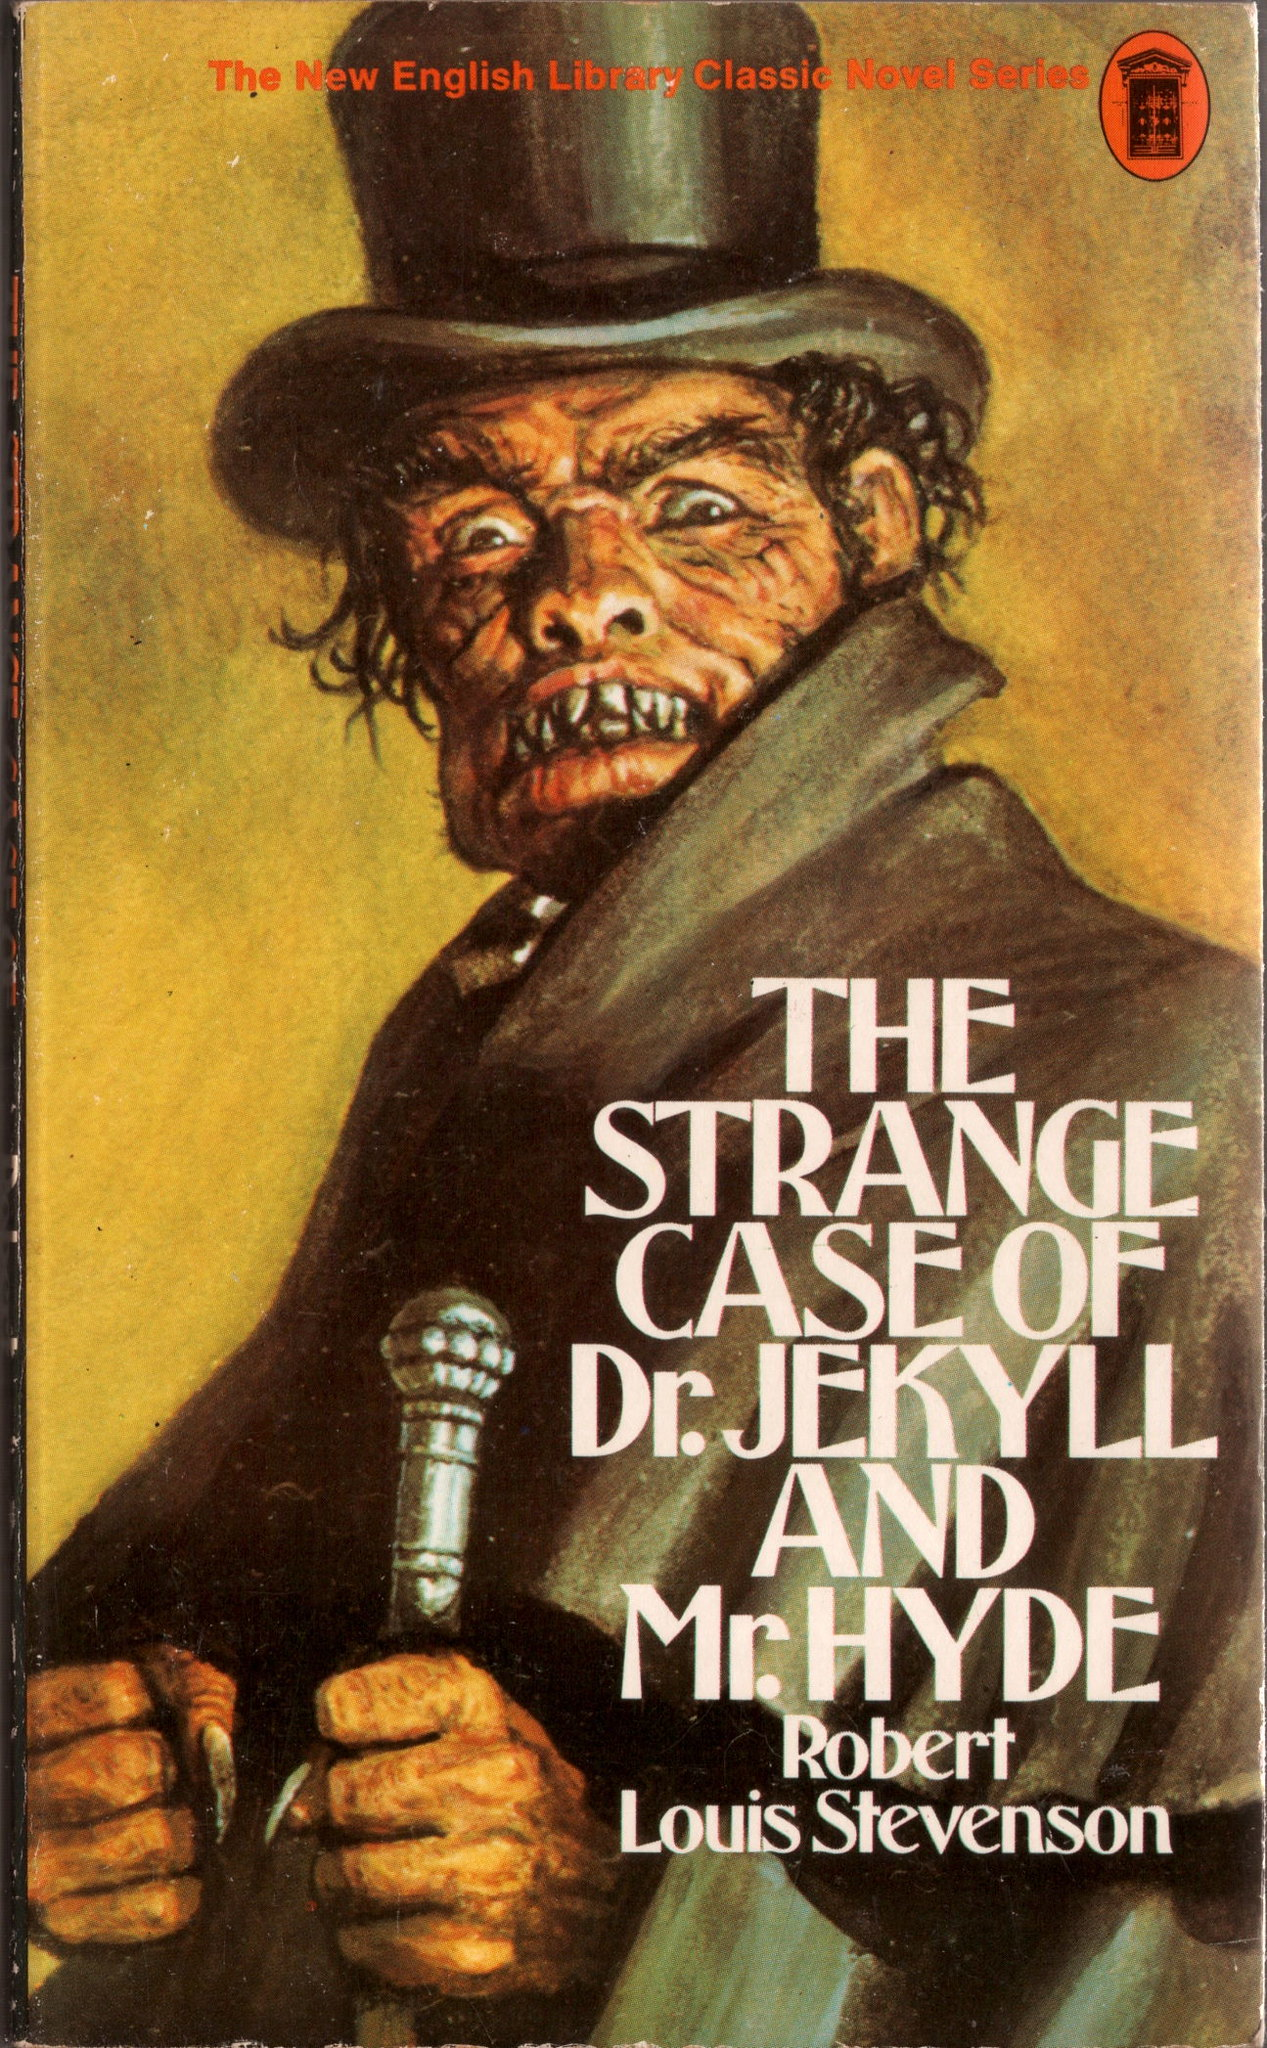 Cover of The Strange Case of Dr Jekyll and Mr Hide - a bestial man wears a top hat